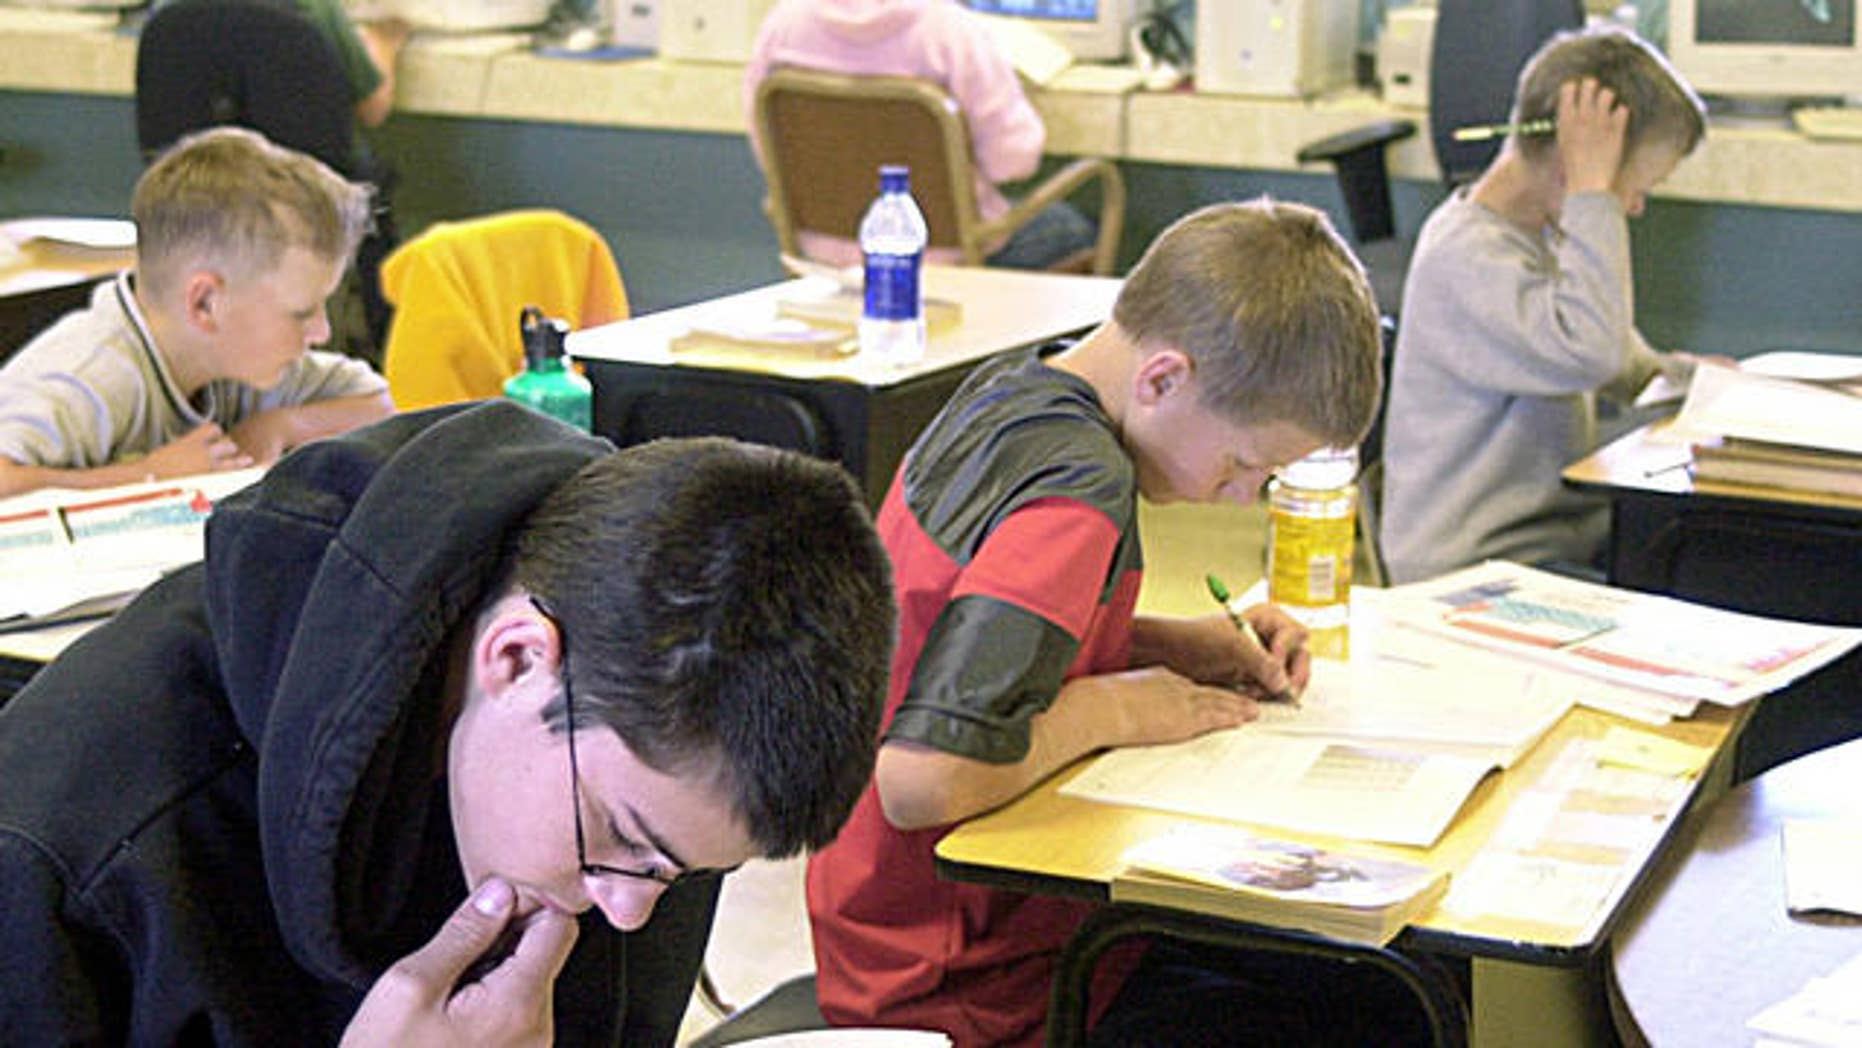 ** FILE **Eighth-grader Ethan Woosley, left, reads while fifth-graders, Ross Frank, middle, Tel Abbe, right, and Jeremiah Taylor, second row, study at Adel Middle School in the small south-central Oregon community of Adel, Ore., April 15, 2004. The U.S. Department of Education's recent announcement that teachers in rural schools would get more time to meet strict federal qualifications was greeted with an audible sigh of relief in schools from Colorado to California. (AP Photo/Don Ryan)